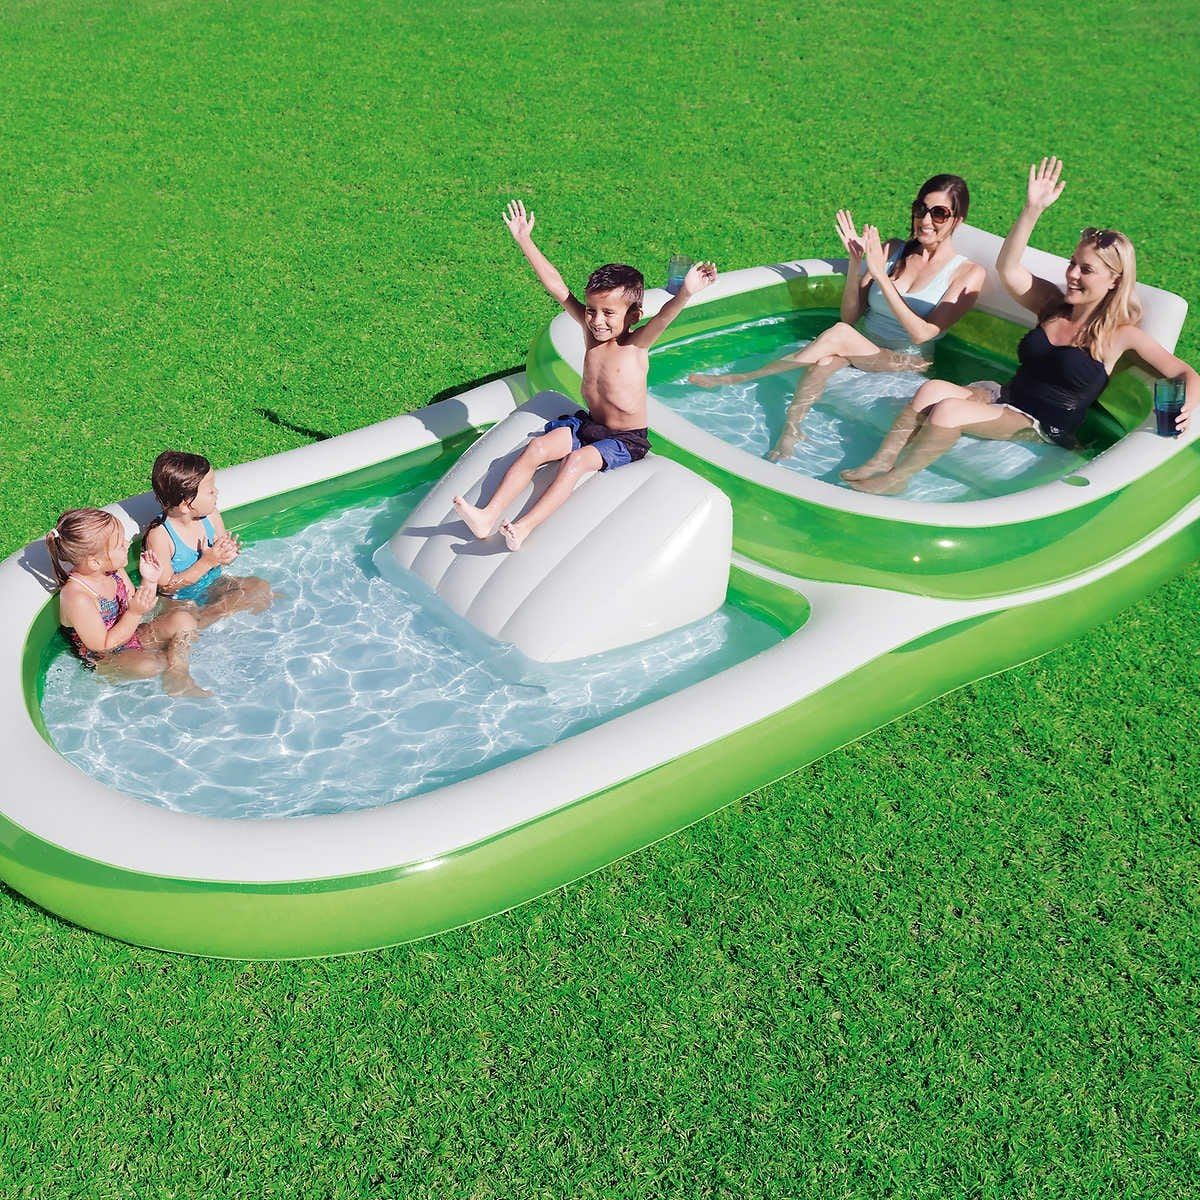 40 Inflatable Pool At Target Is A Summer Must Have Simplemost Inflatable Swimming Pool Inflatable Pool Family Pool